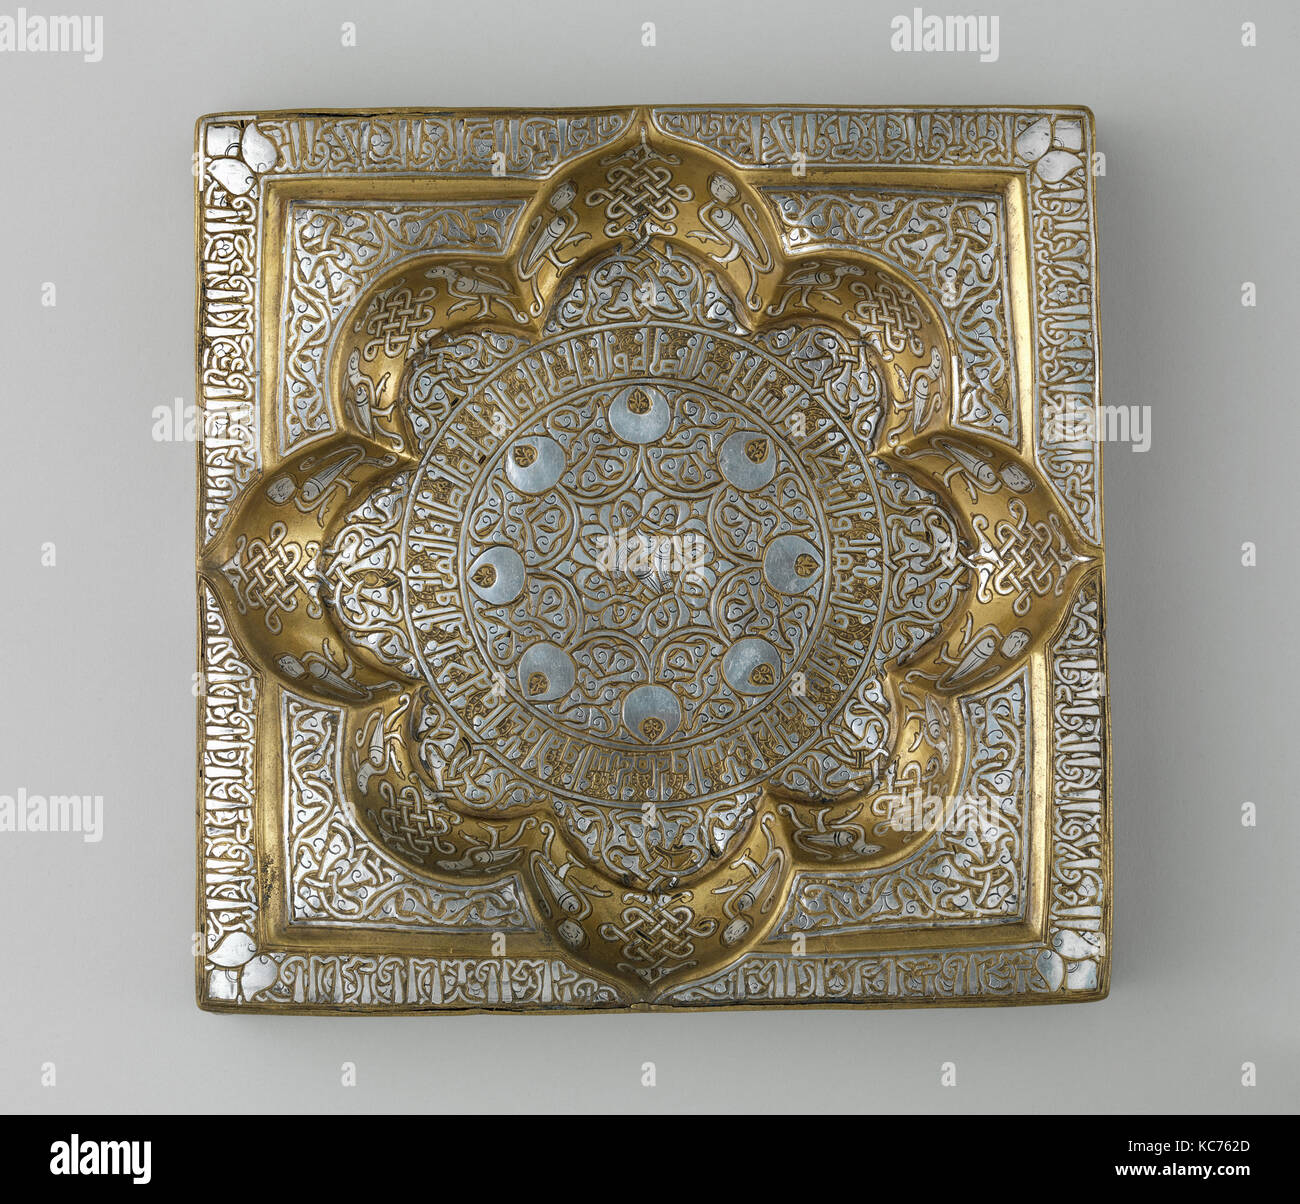 Square Tray with Recessed Medallion, early 13th century - Stock Image